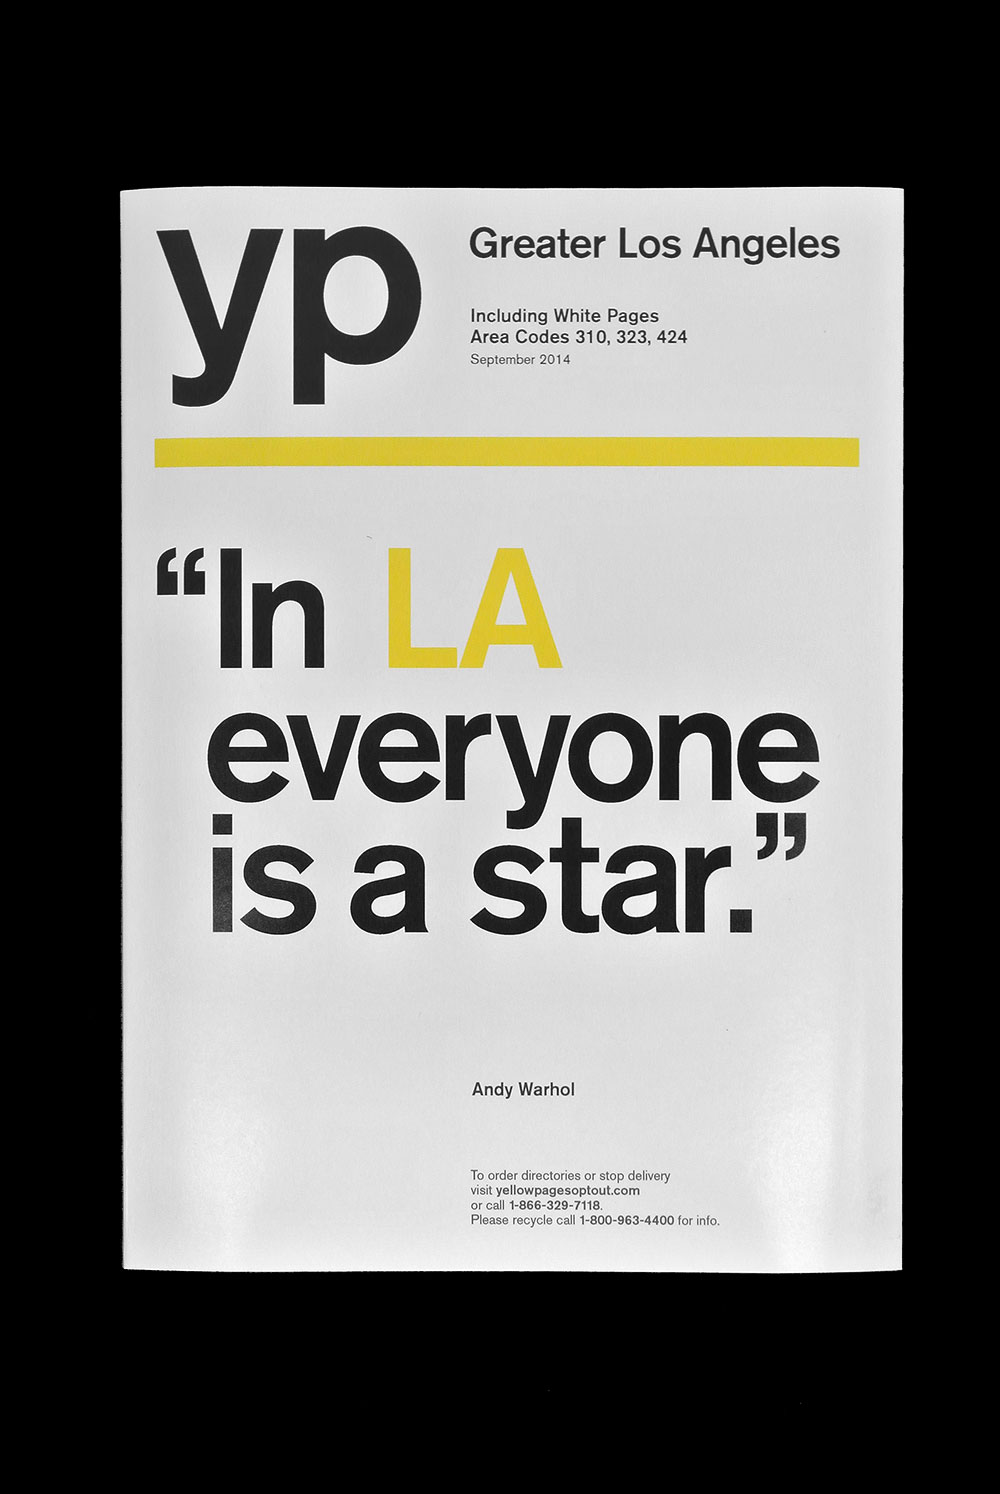 yellow pages YP cover Los Angeles Andy Warhol Matt Matthijs van Leeuwen Interbrand